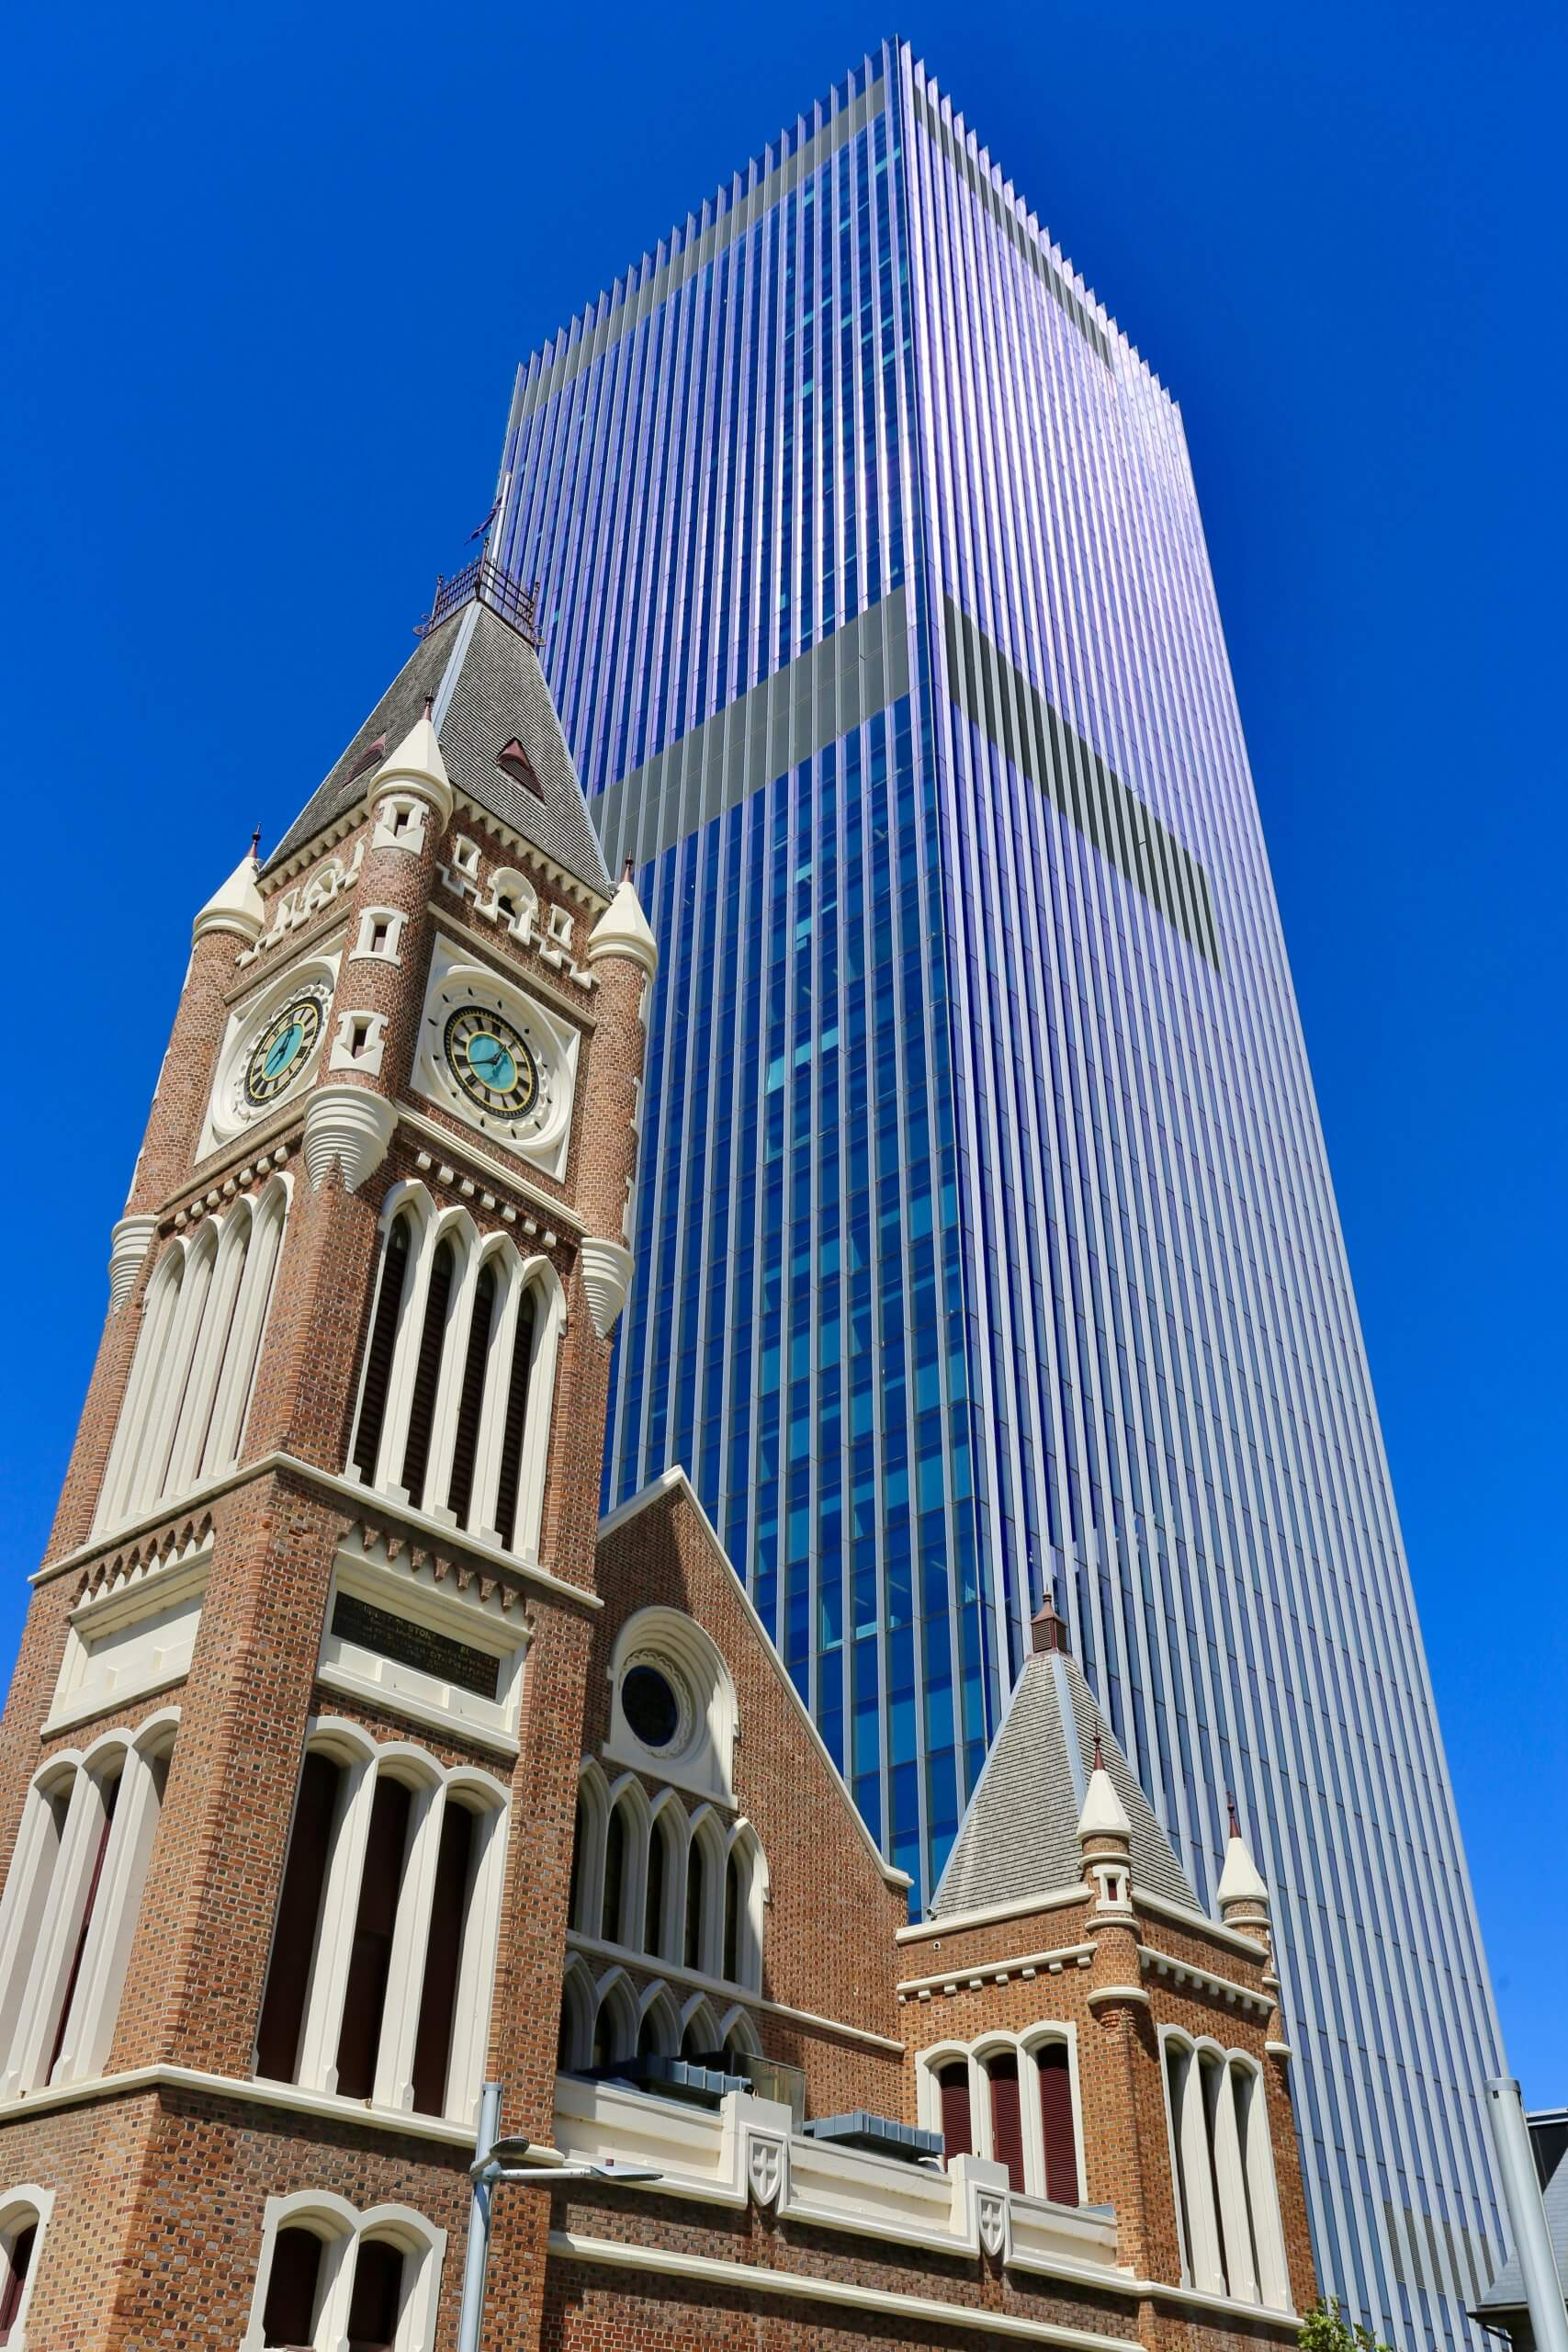 Old and new architecture in downtown Perth.